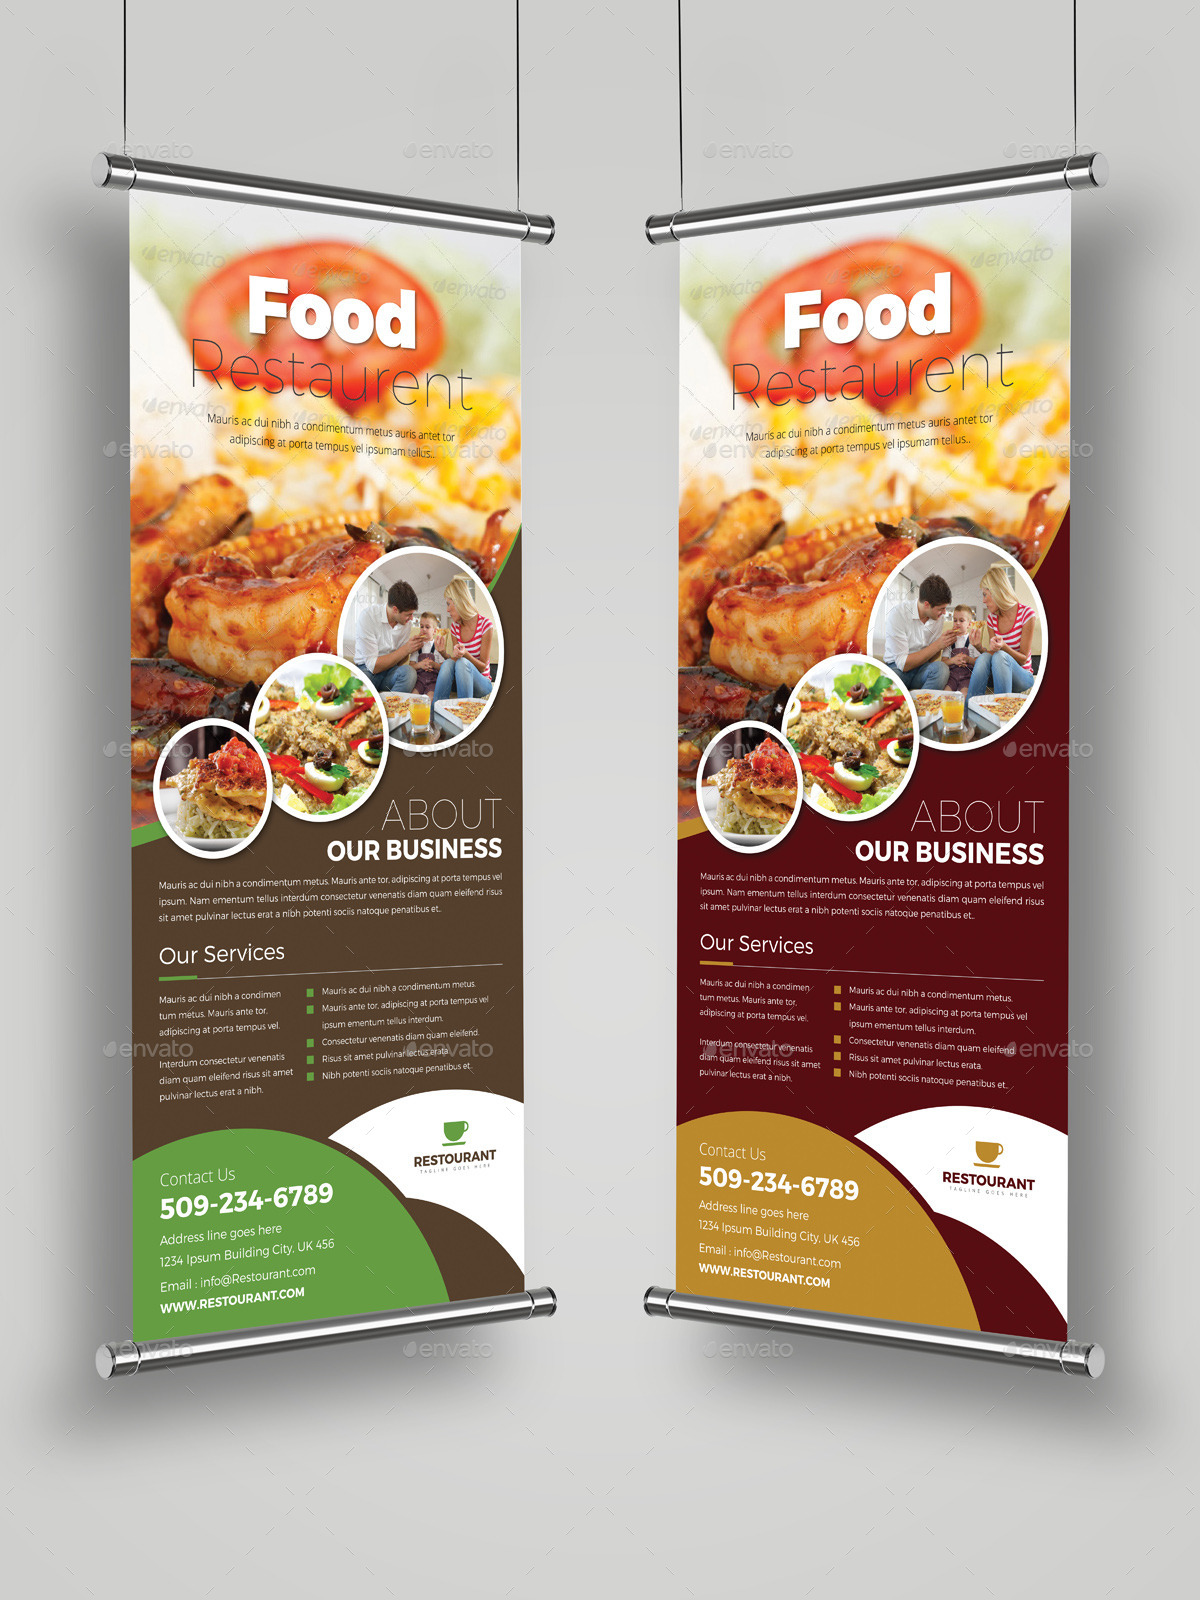 Food Restaurant Roll Up Banner Signage Template By